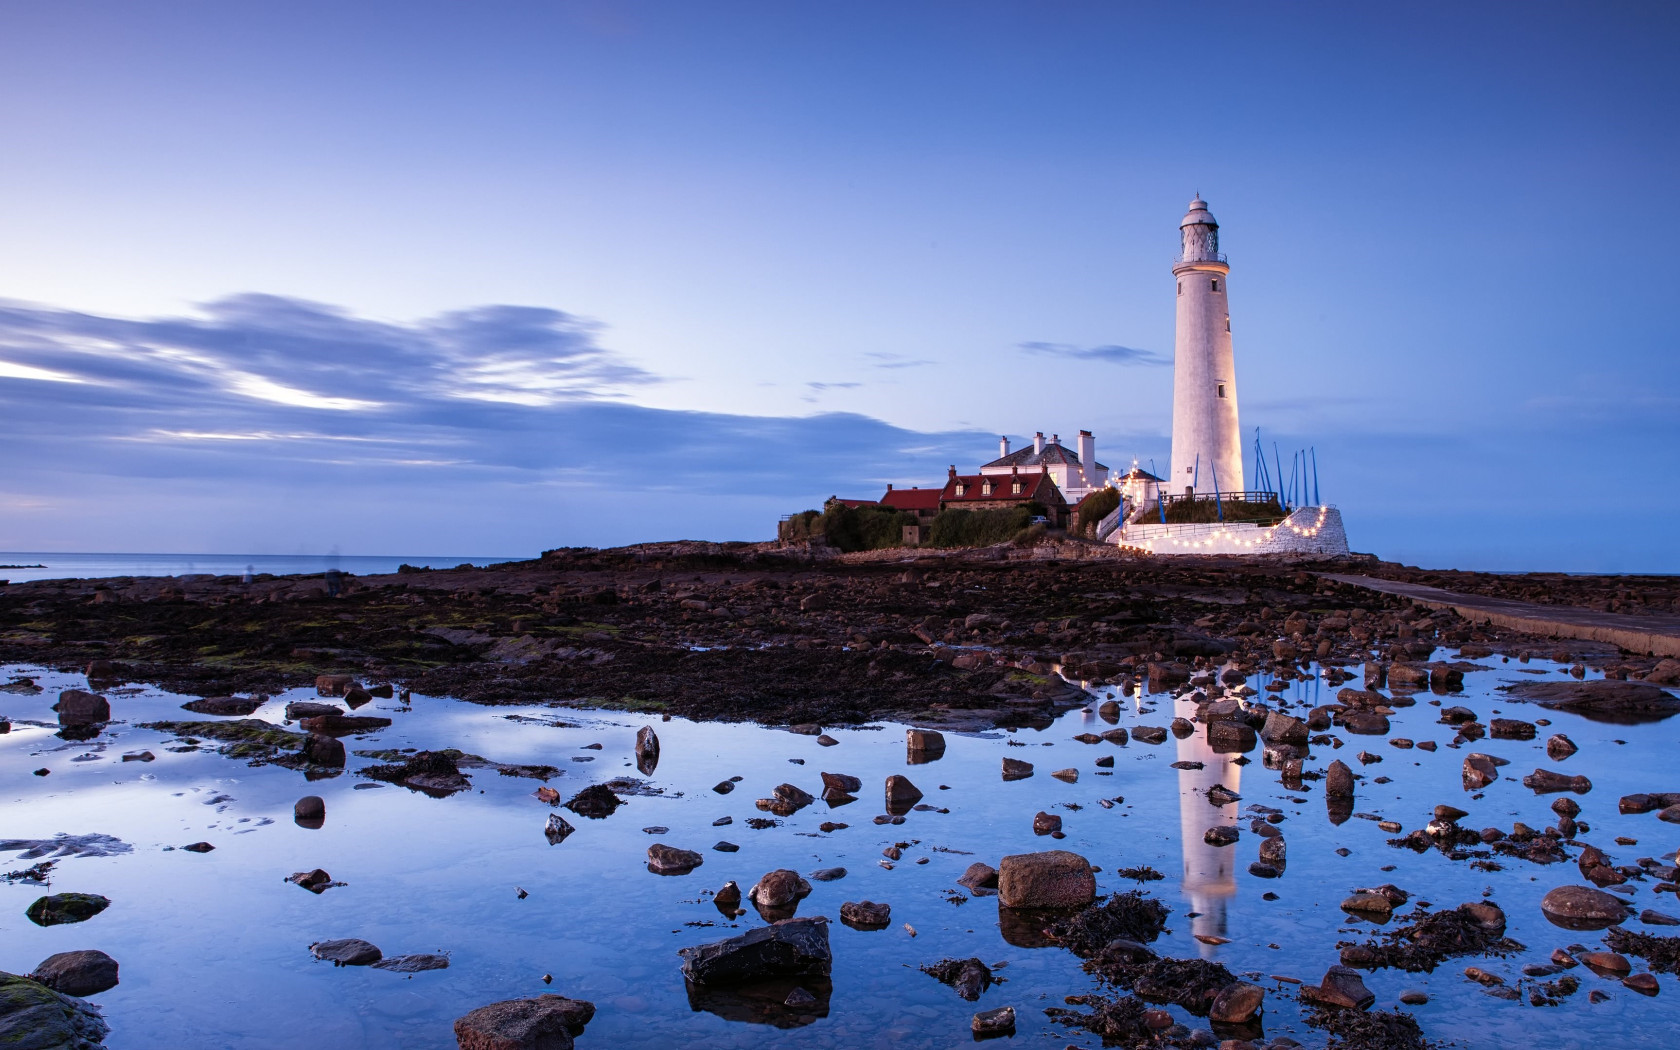 Saint Mary's lighthouse wallpaper 1680x1050